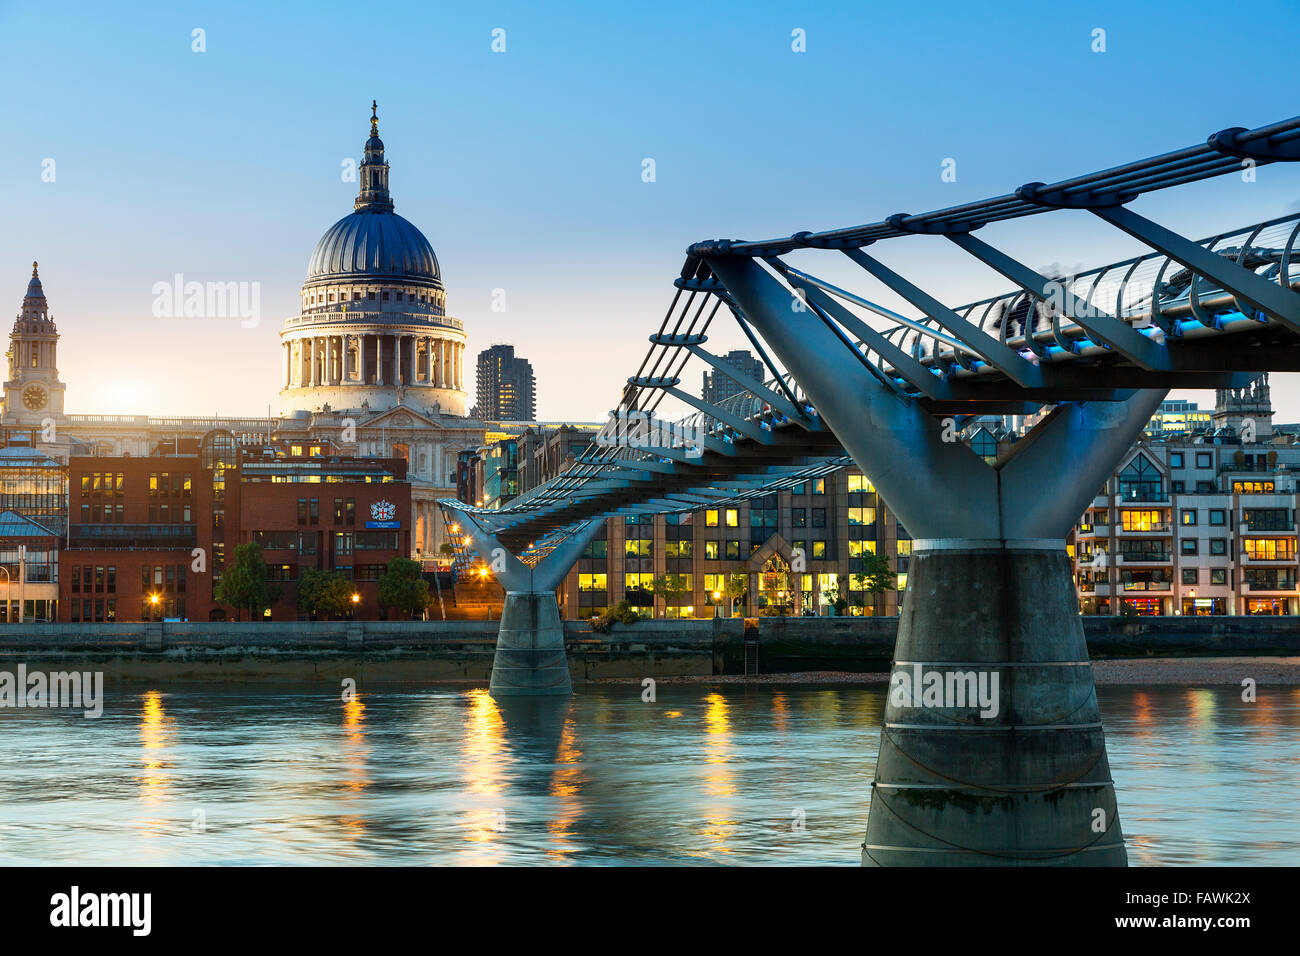 London, Millennium bridge at dusk - Stock Image